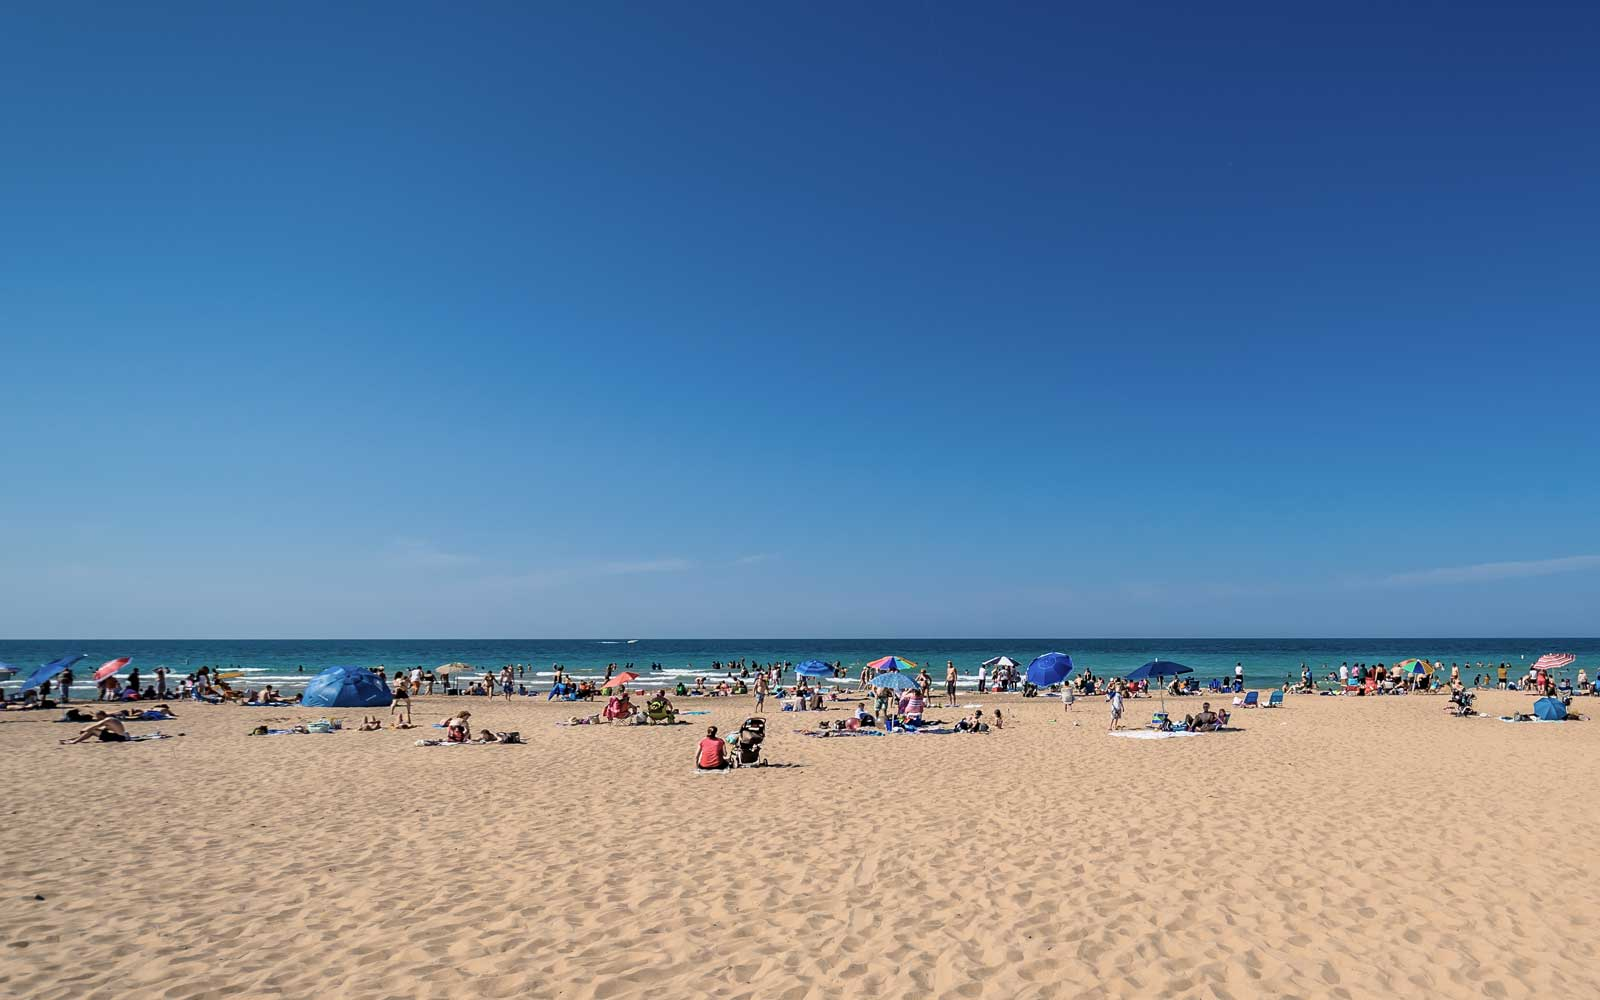 Blue sky above beach at the Indiana Dunes National Lakeshore